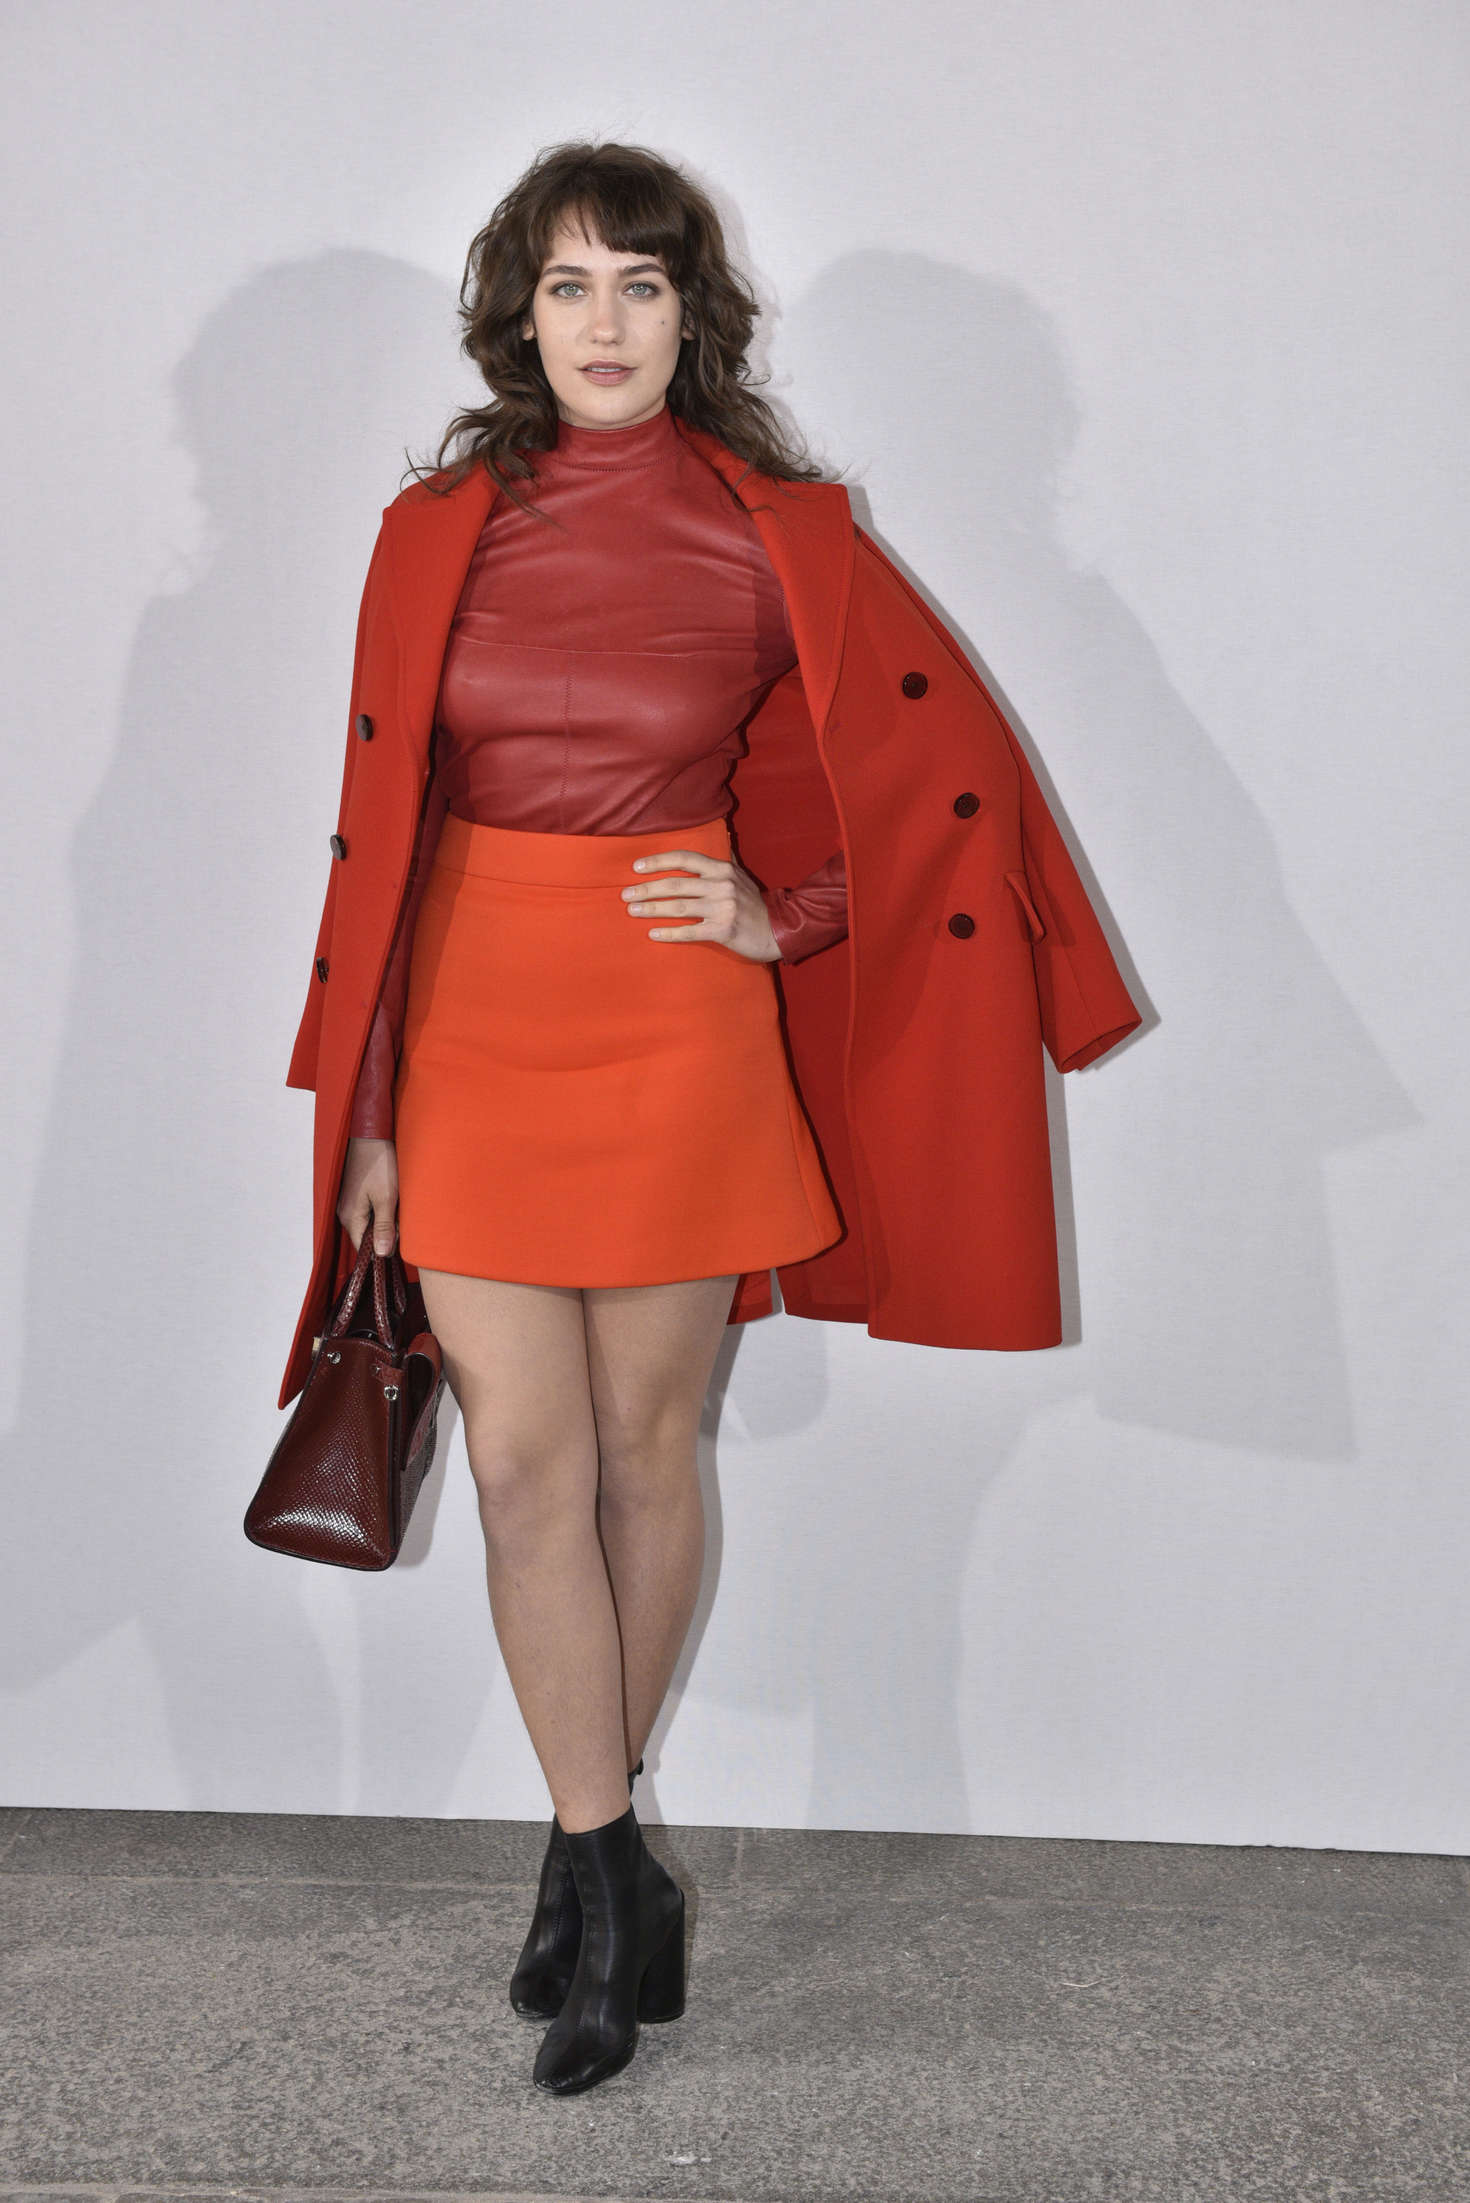 Lola Kirke Christian Dior Fashion Show in Paris